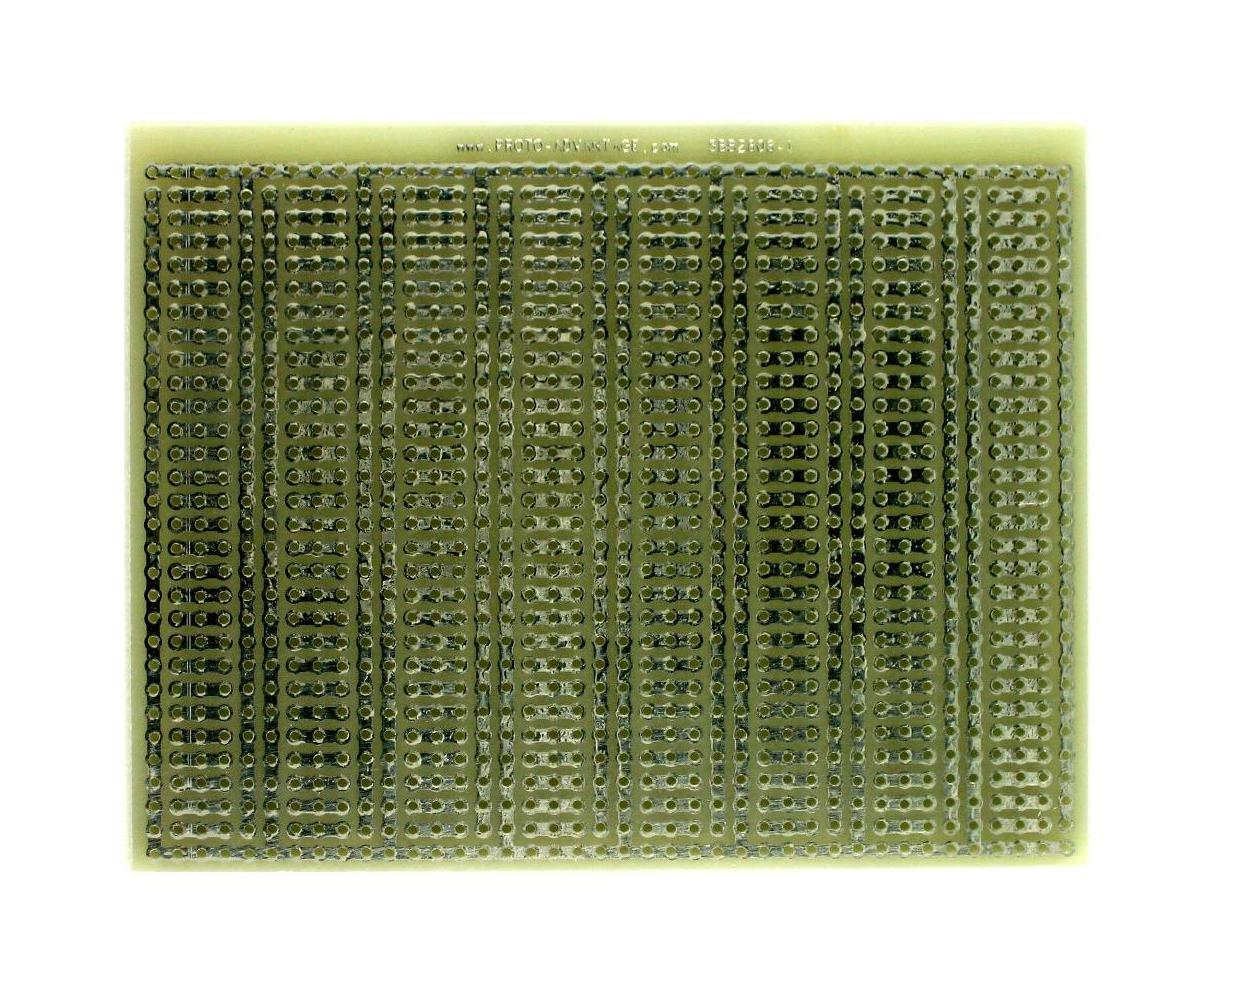 Solder Breadboard (28 row 8 column) 0